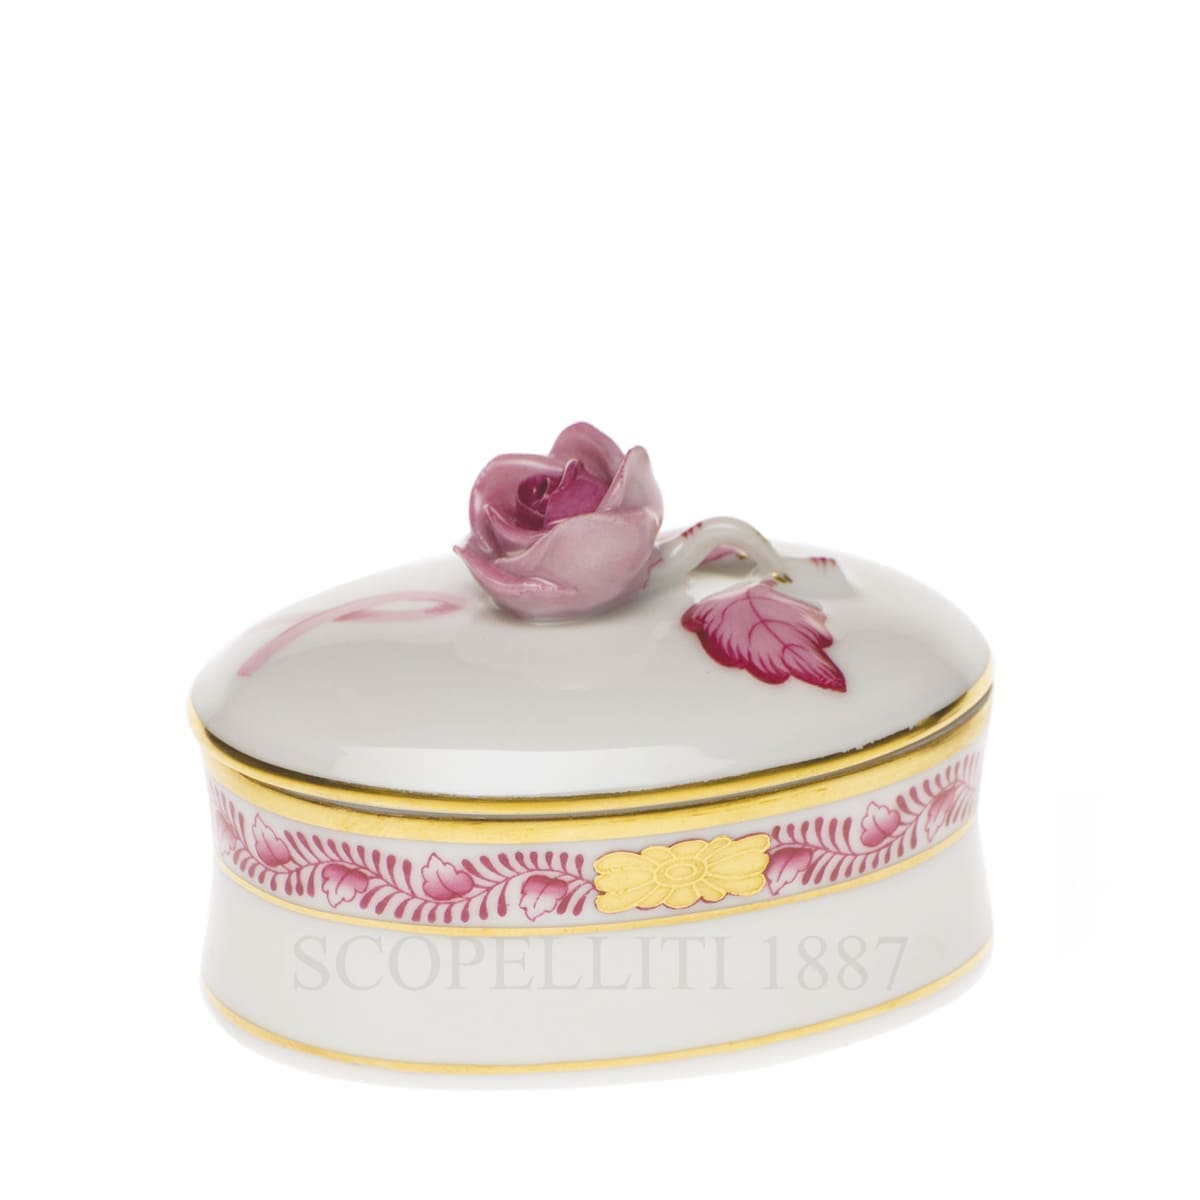 herend handpainted porcelain bonbonniere with rose pink